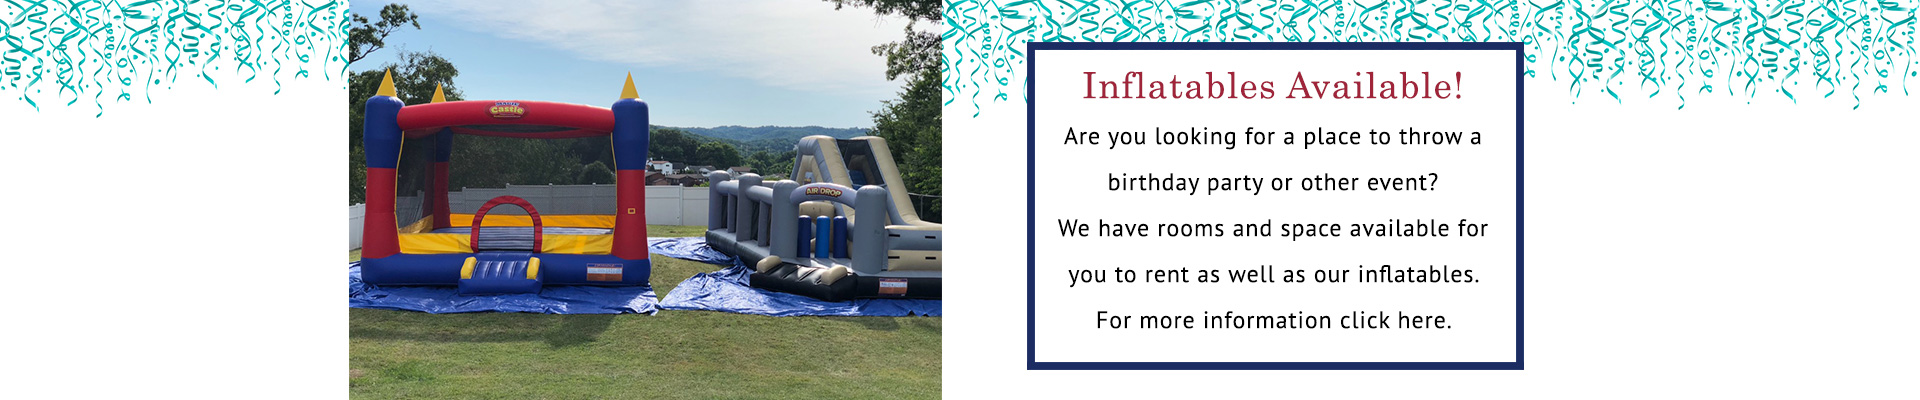 Inflatables Available